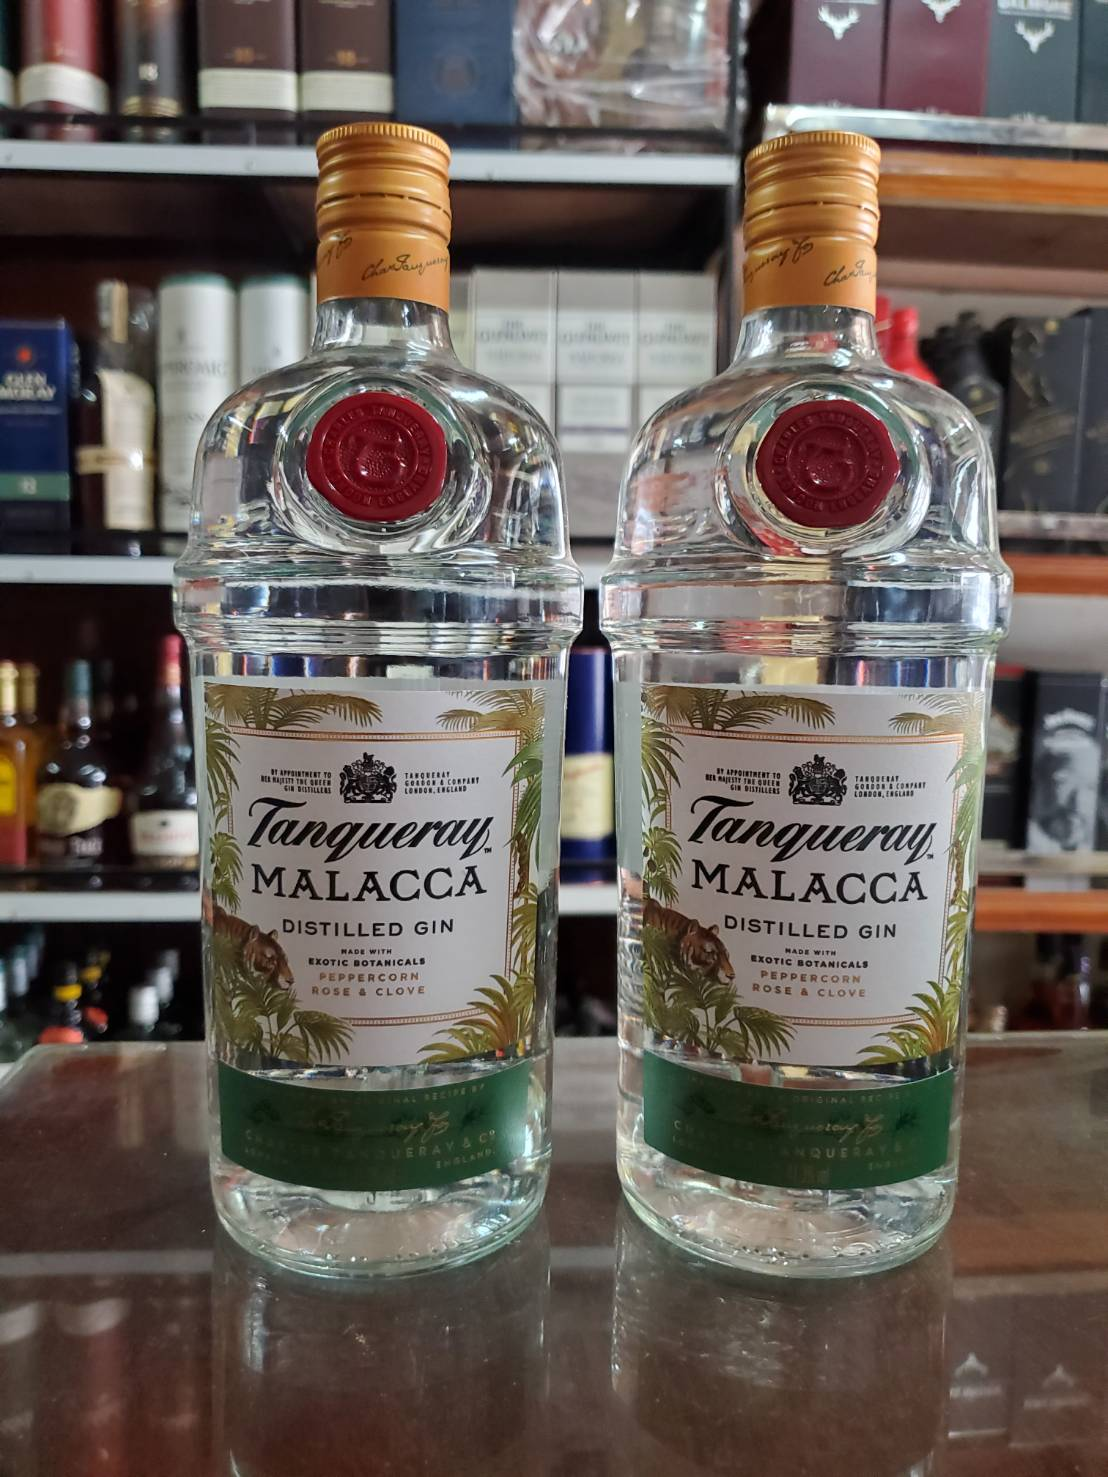 Tanqueray Malacca 1Liter